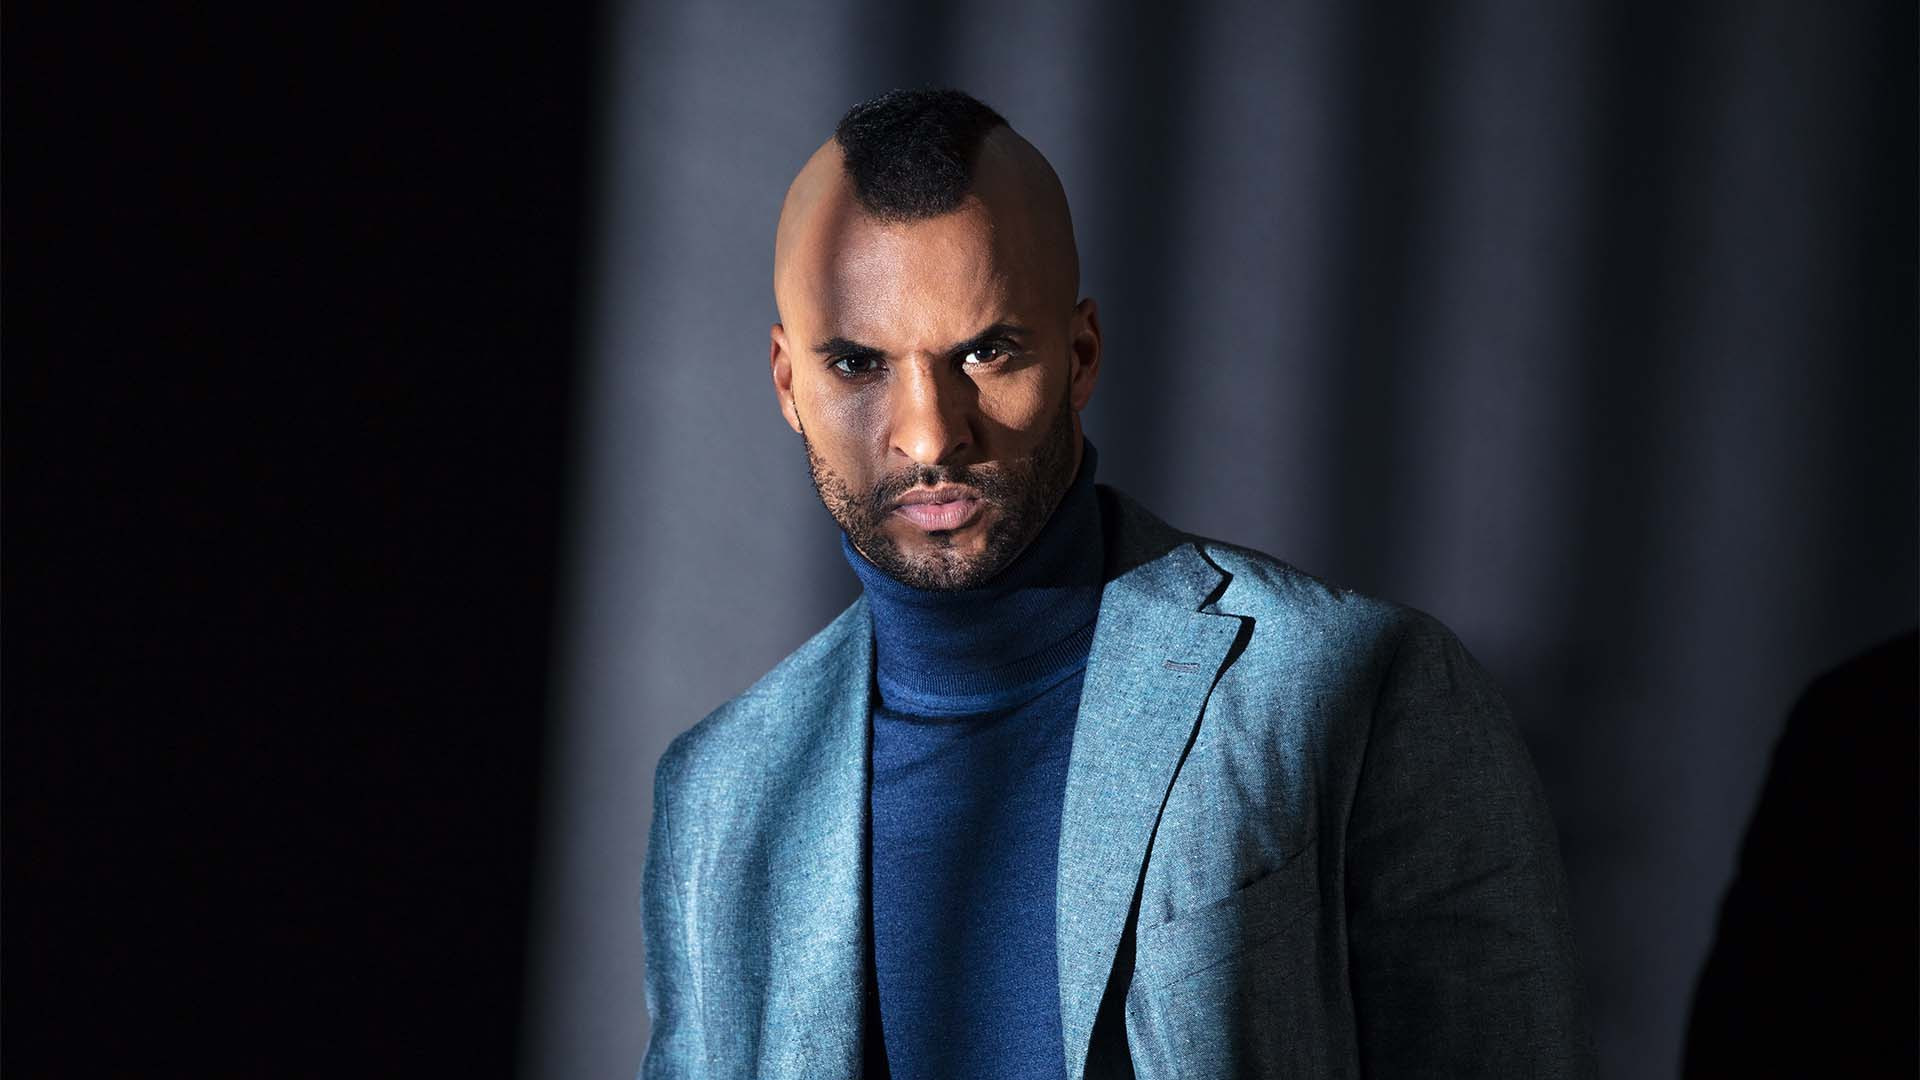 Ricky Whittle, star of American Gods on Amazon Prime, poses in a roll neck